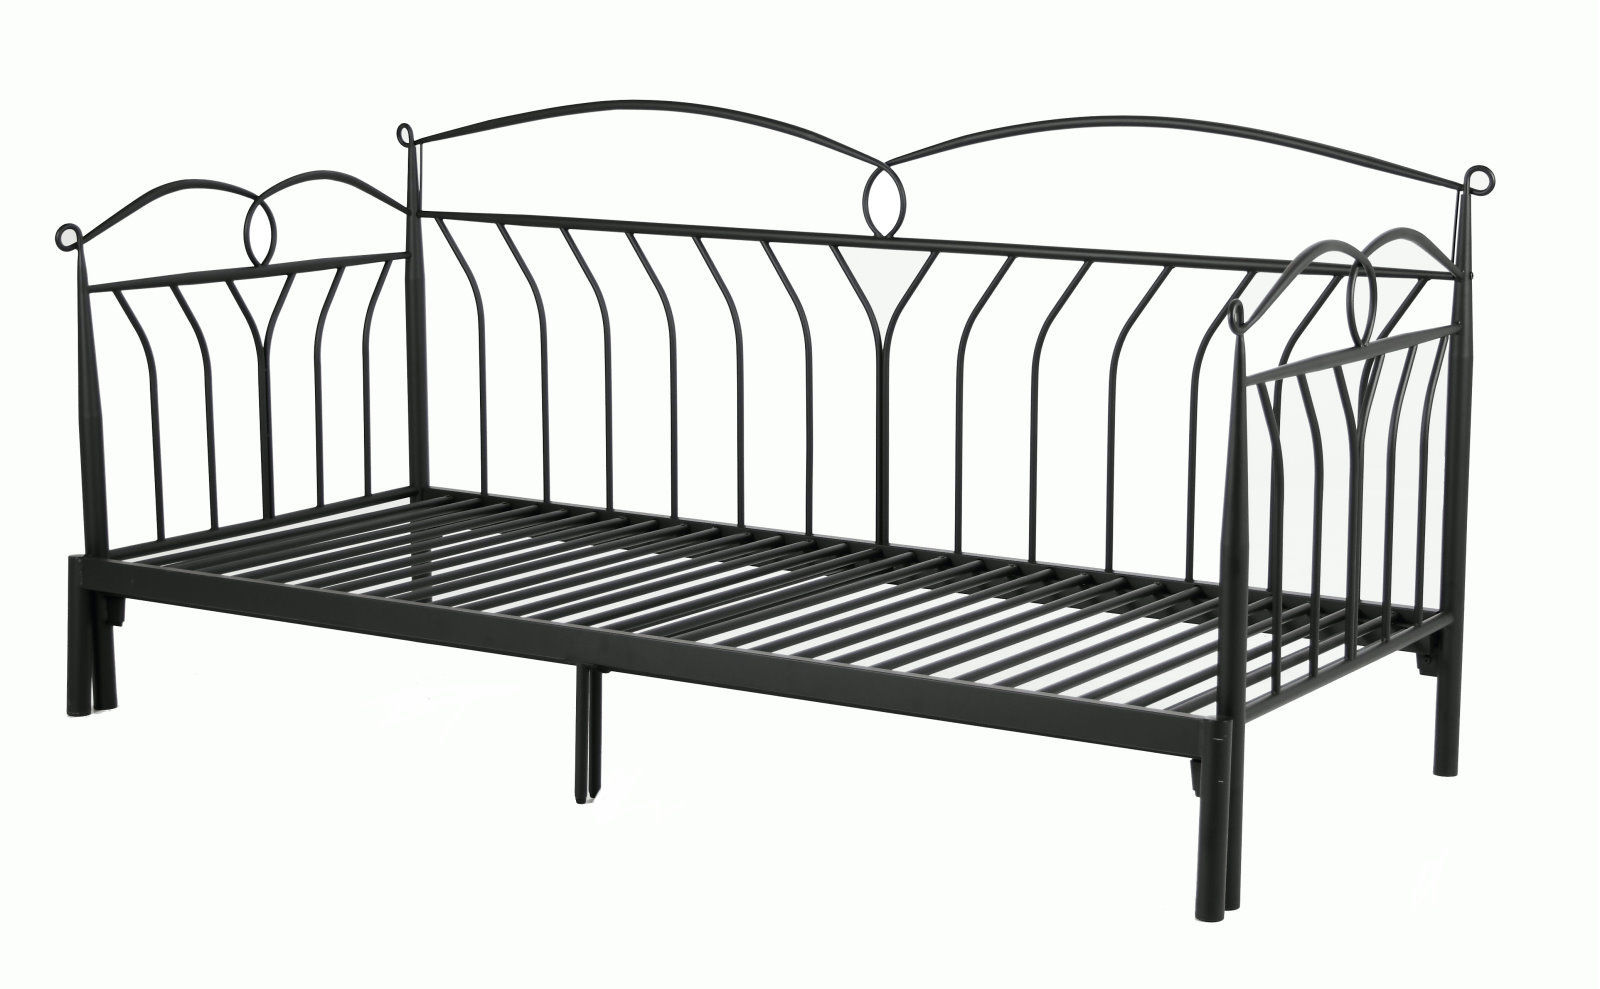 pkline metallbett schwarz 90x200 bett jugendbett kinderbett tagesbett sofa m bel wohnen. Black Bedroom Furniture Sets. Home Design Ideas